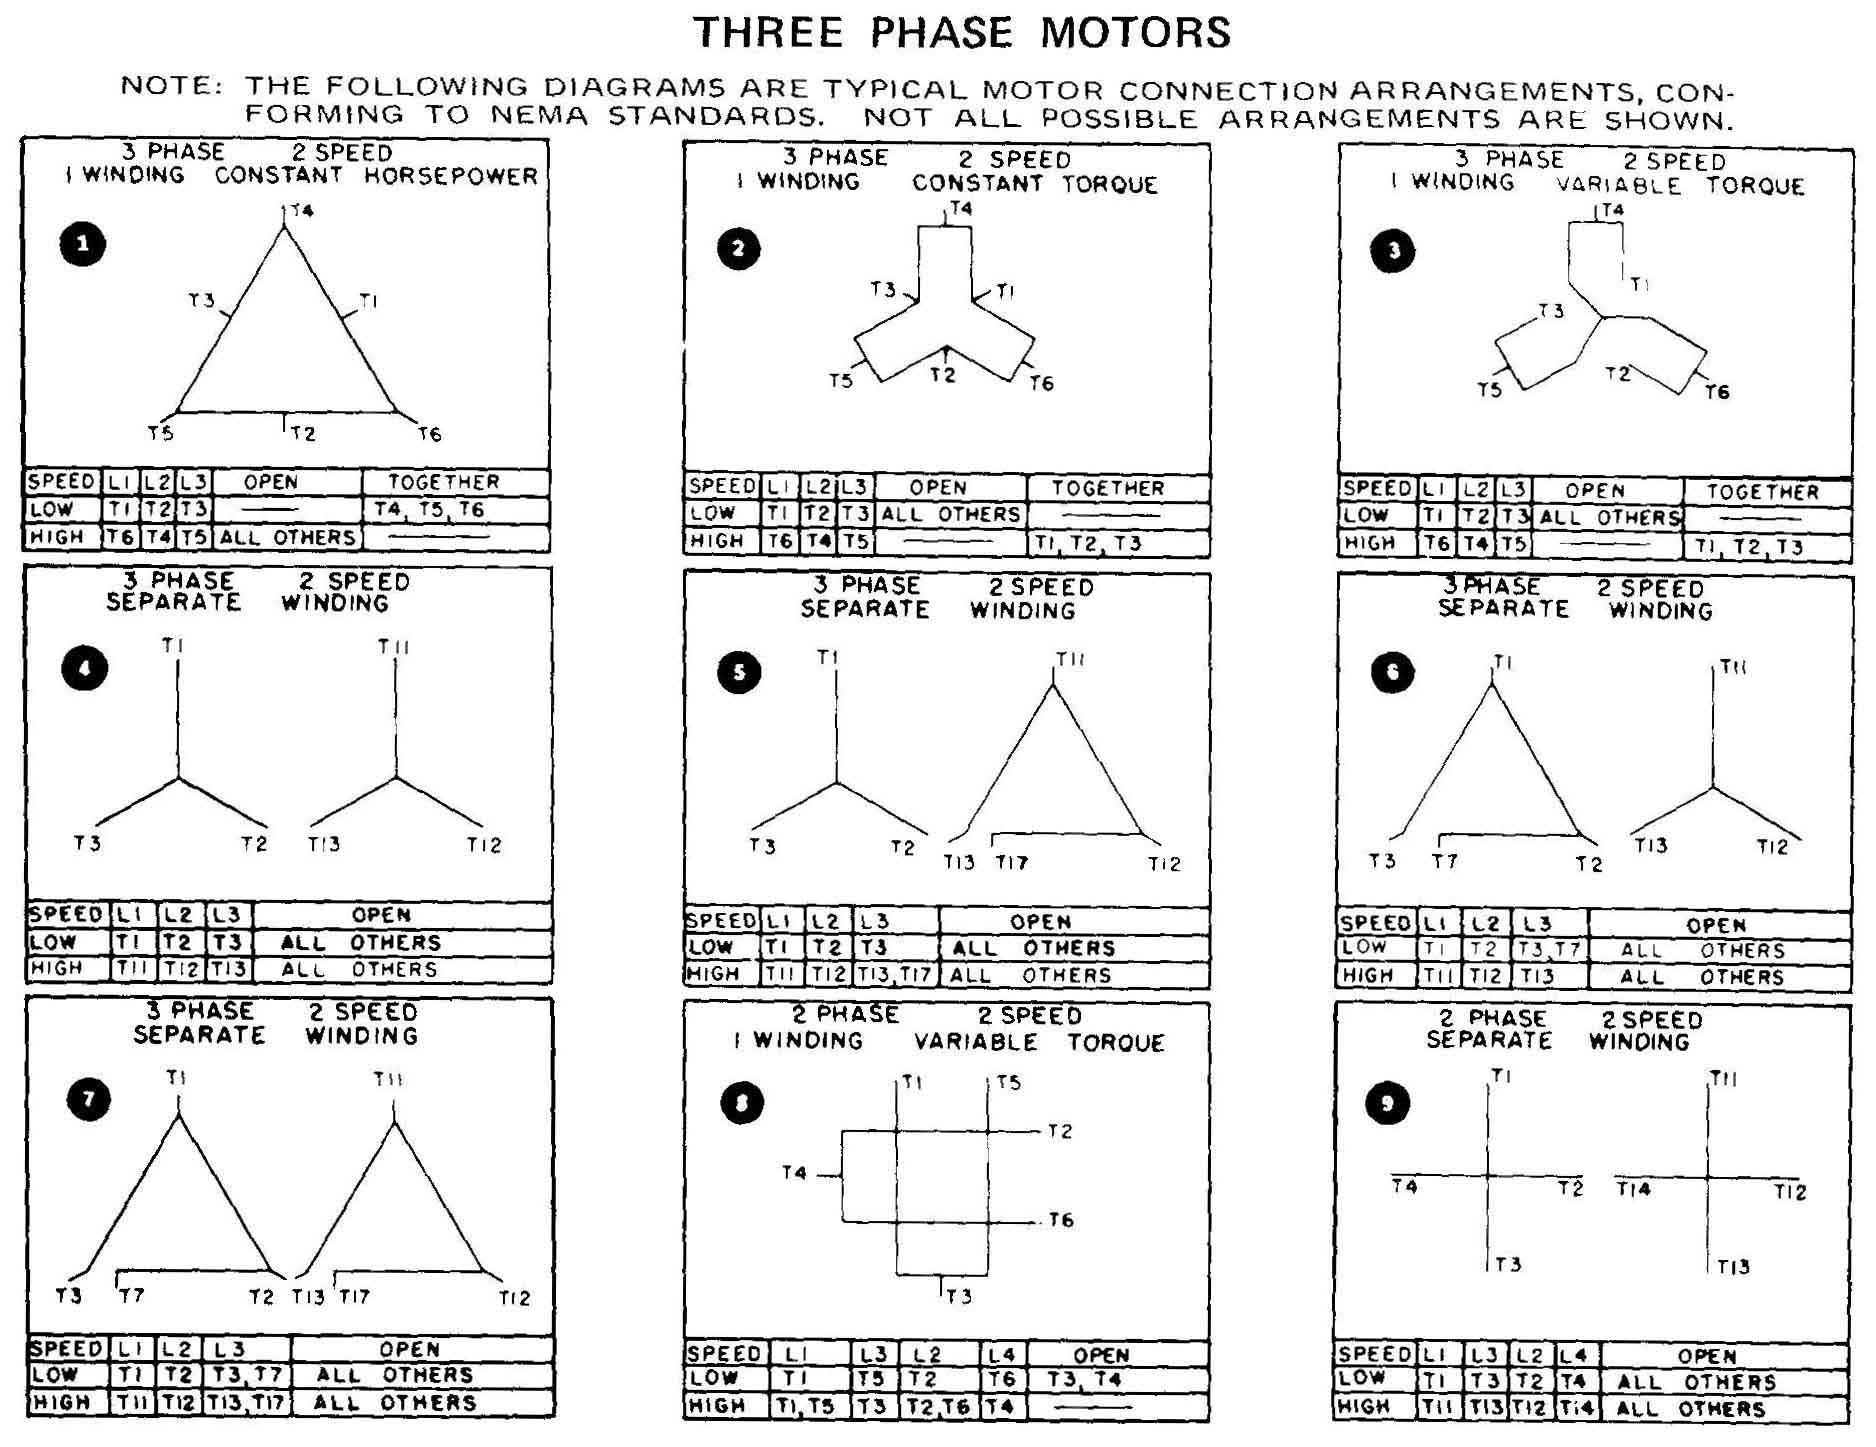 Interpreting The Wiring Diagrams & Tables